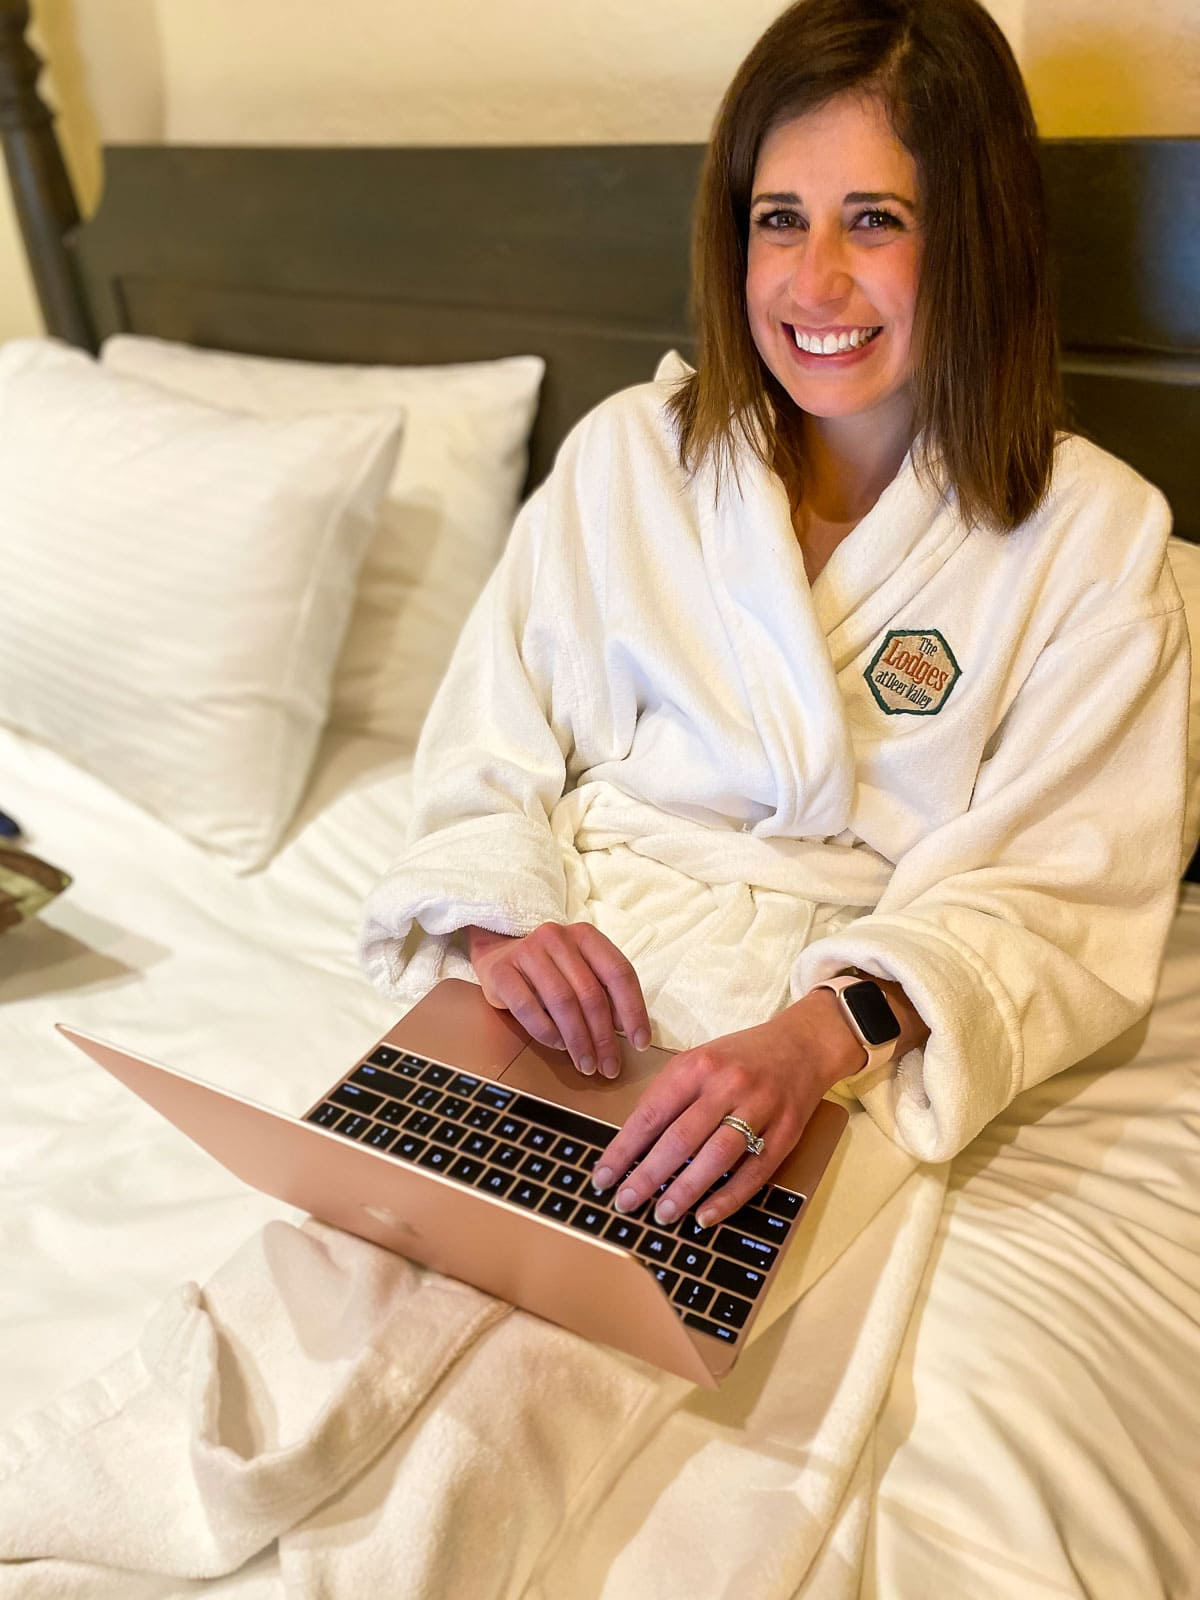 Working on a laptop in a bathrobe